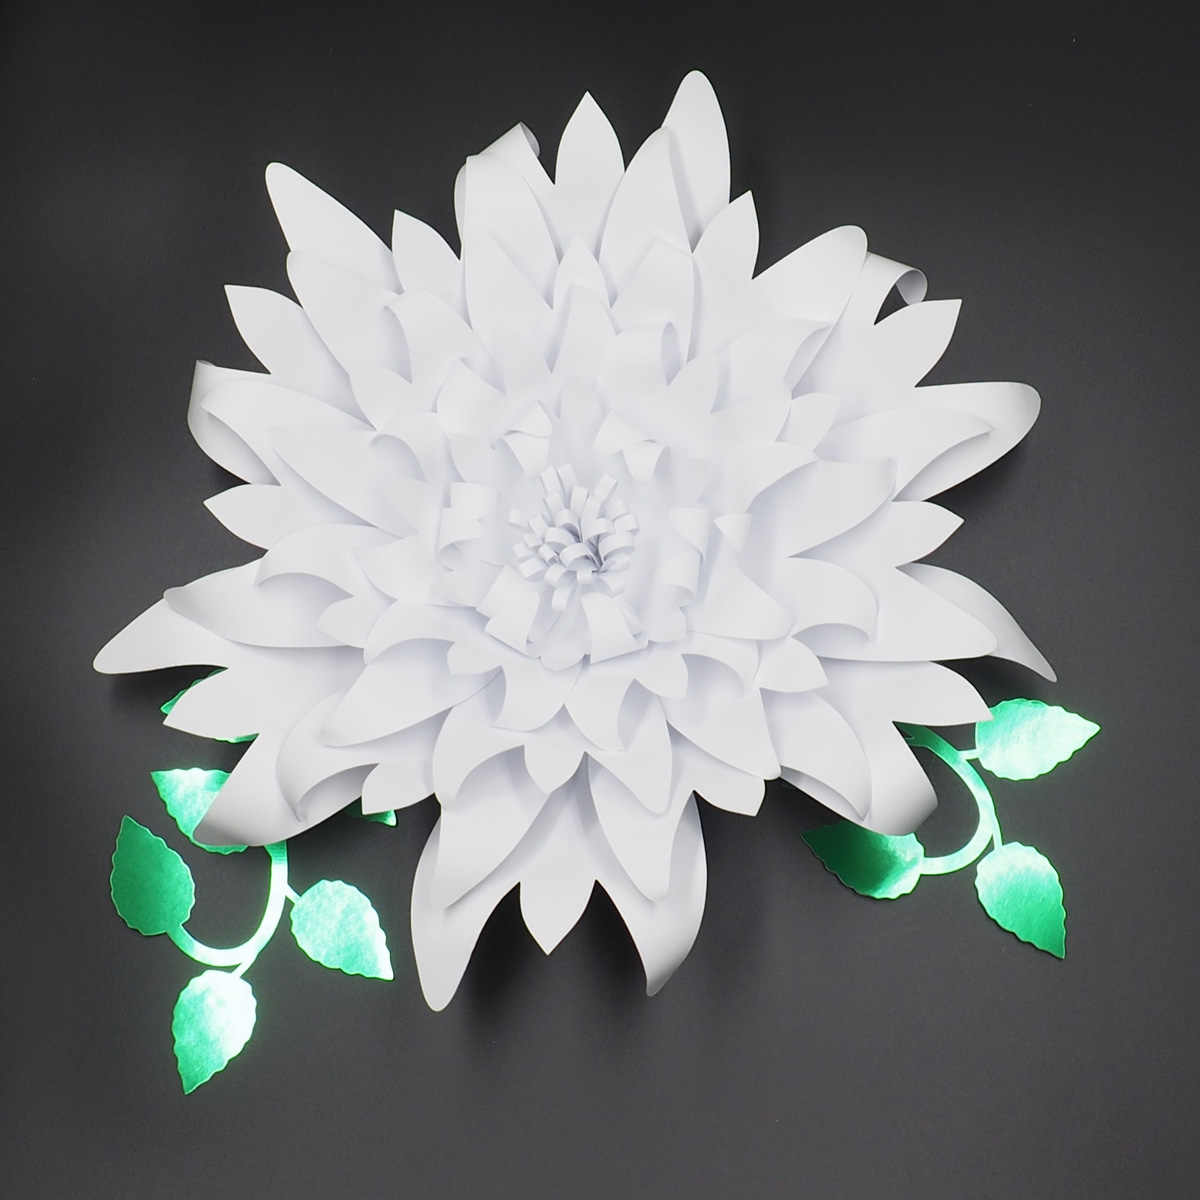 1piece Flower 2pcs Leaves Giant Large Paper Flowers Backdrop Wall Deco Wedding Arch Handcrafted Artificial Flowers Wall Hanging